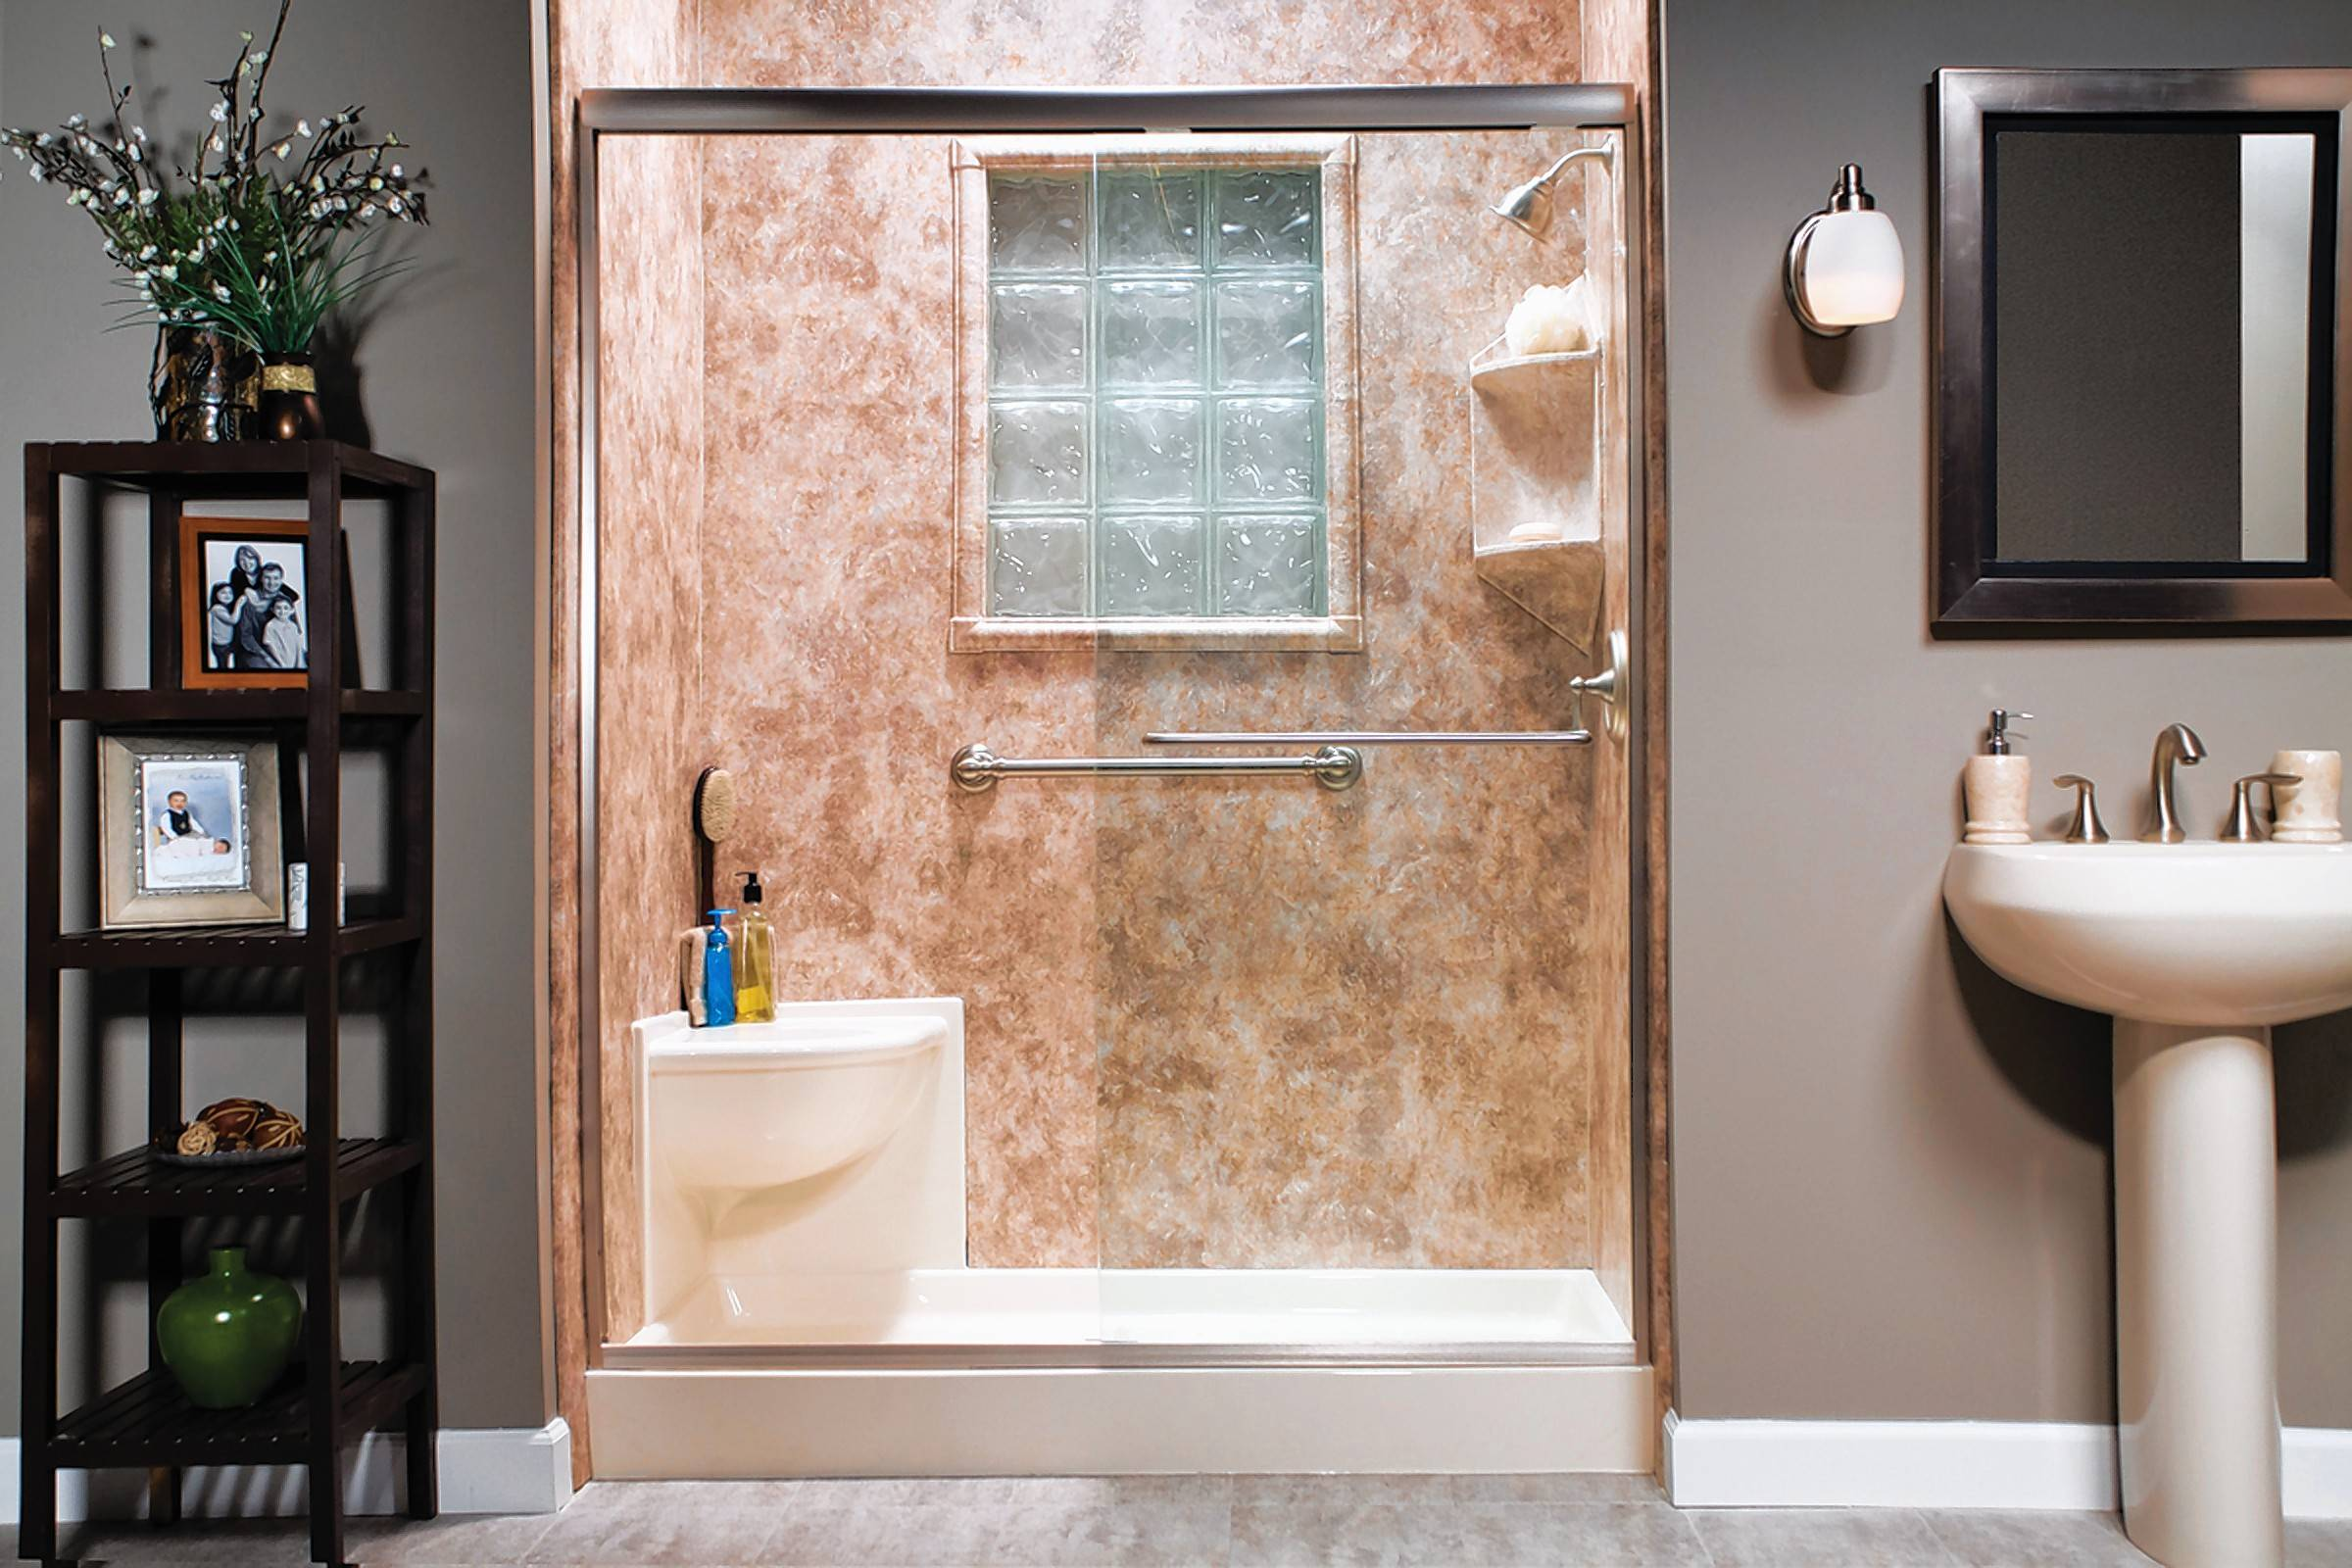 Many homeowners are replacing their tubs with walk-in shower units.